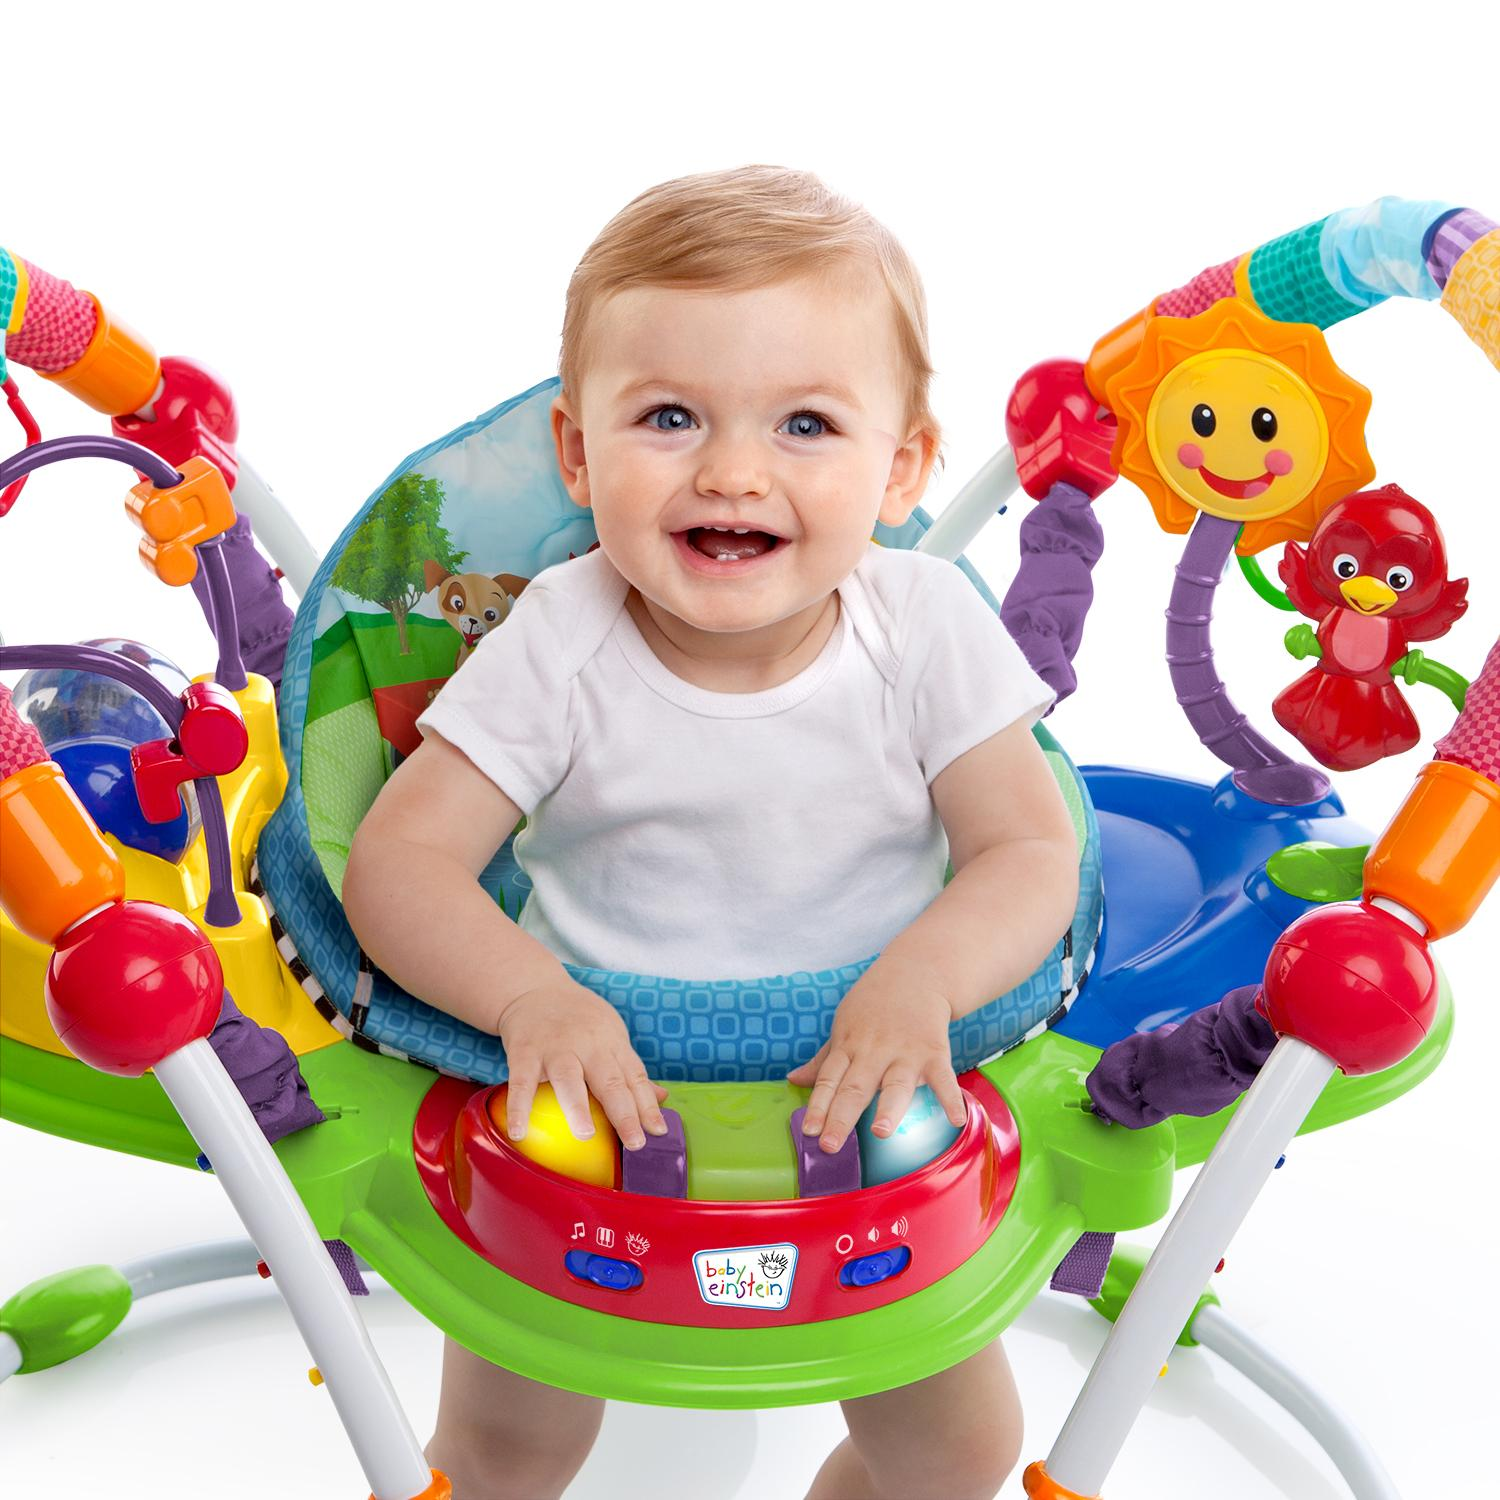 Amazon Baby Einstein Activity Jumper Special Edition Neighborhood Friends Baby